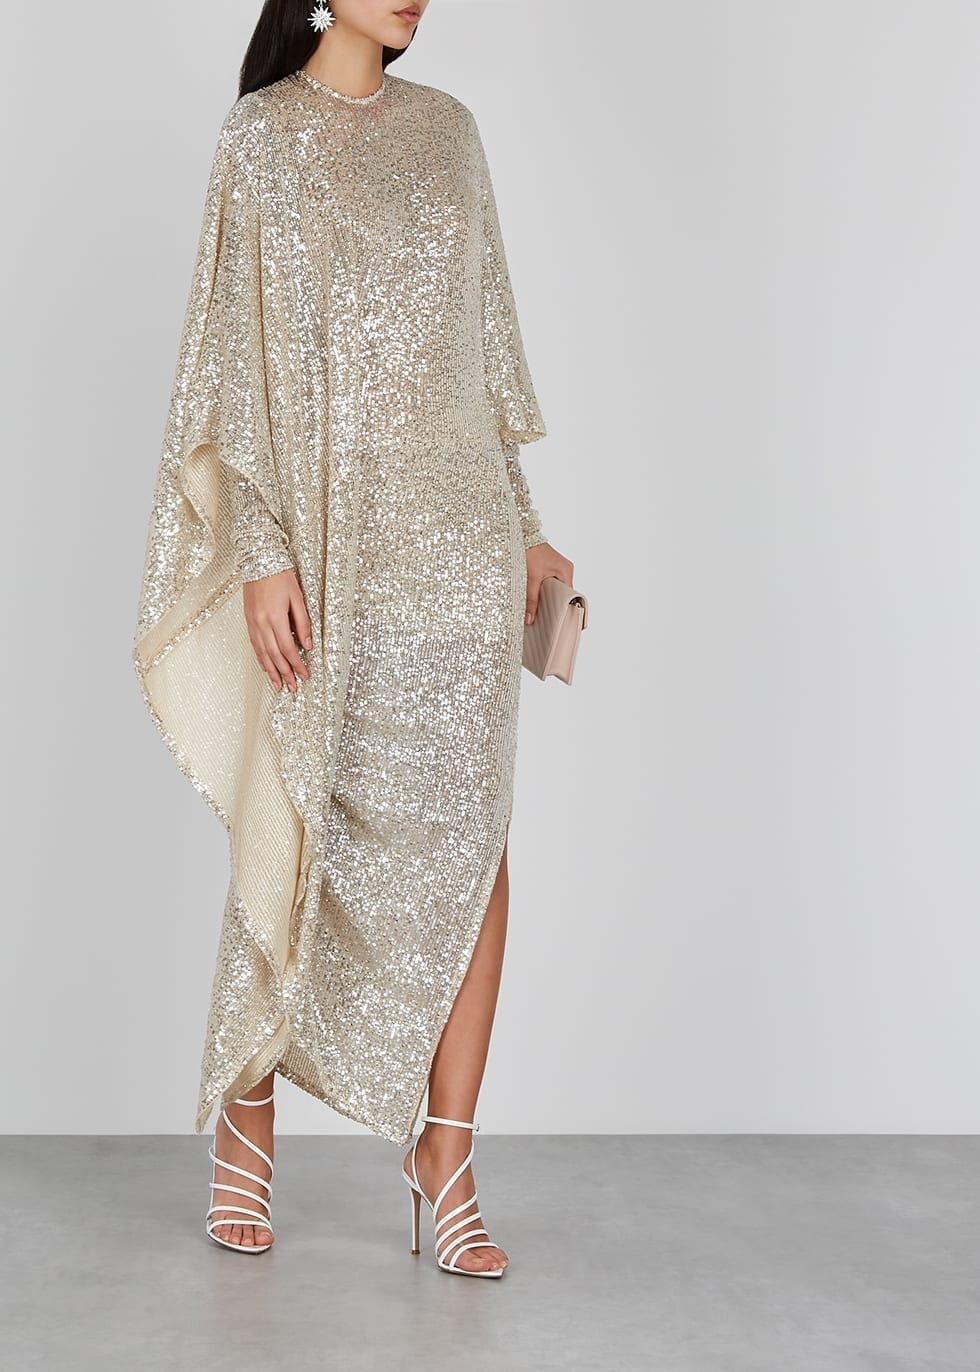 PAULA KNORR Champagne Draped Sequin Dress